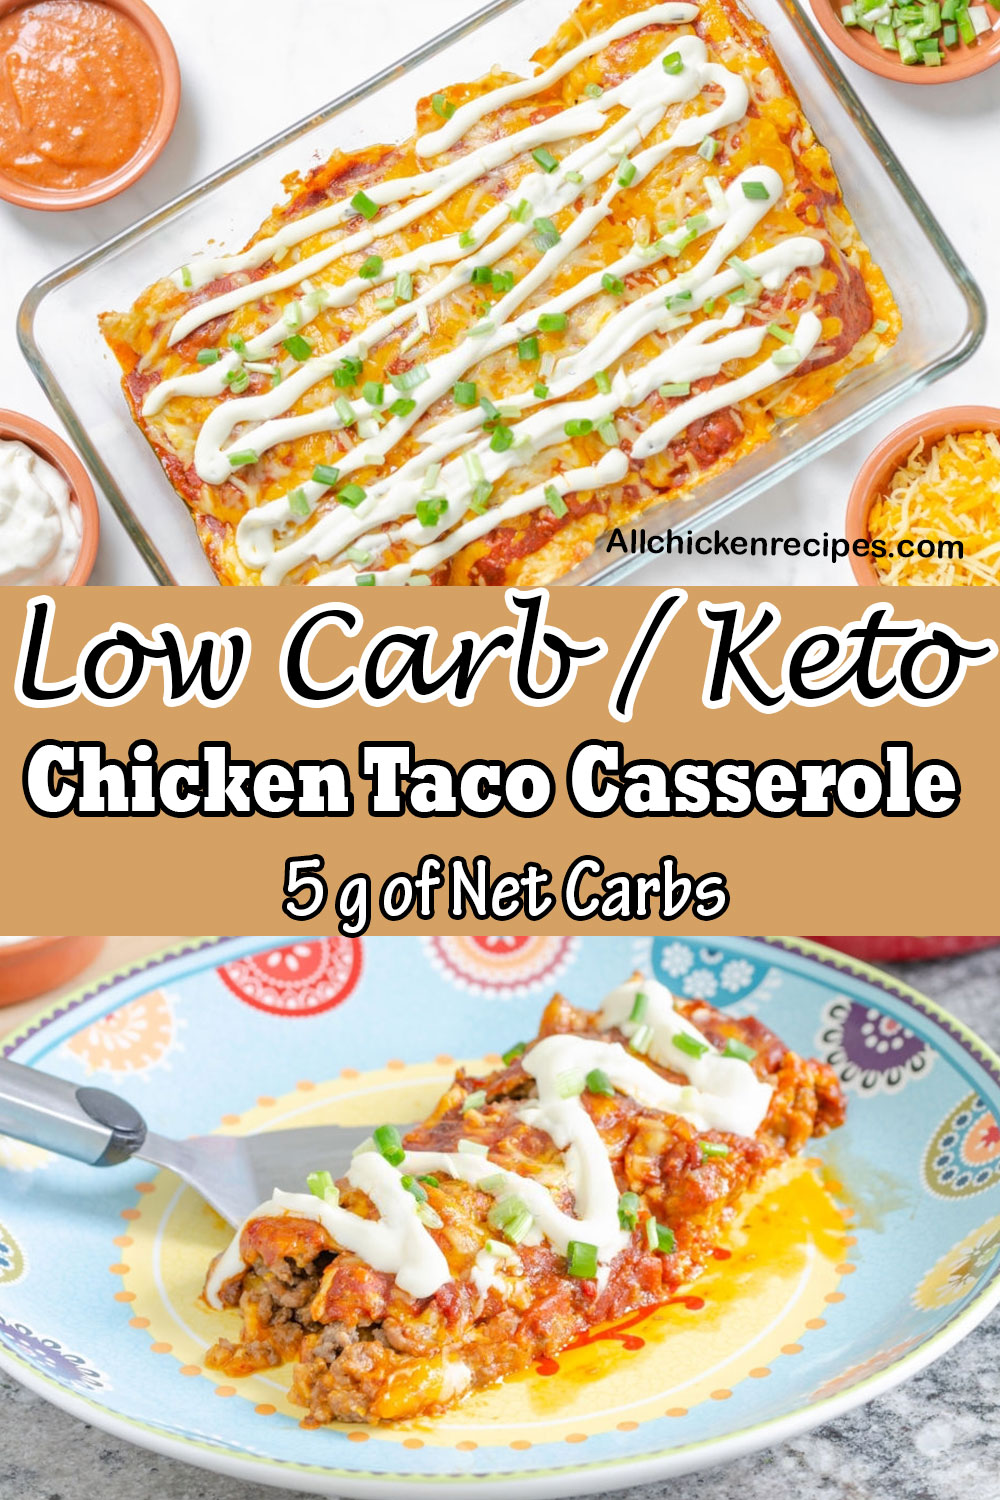 Low Carb Keto Chicken Taco Casserole